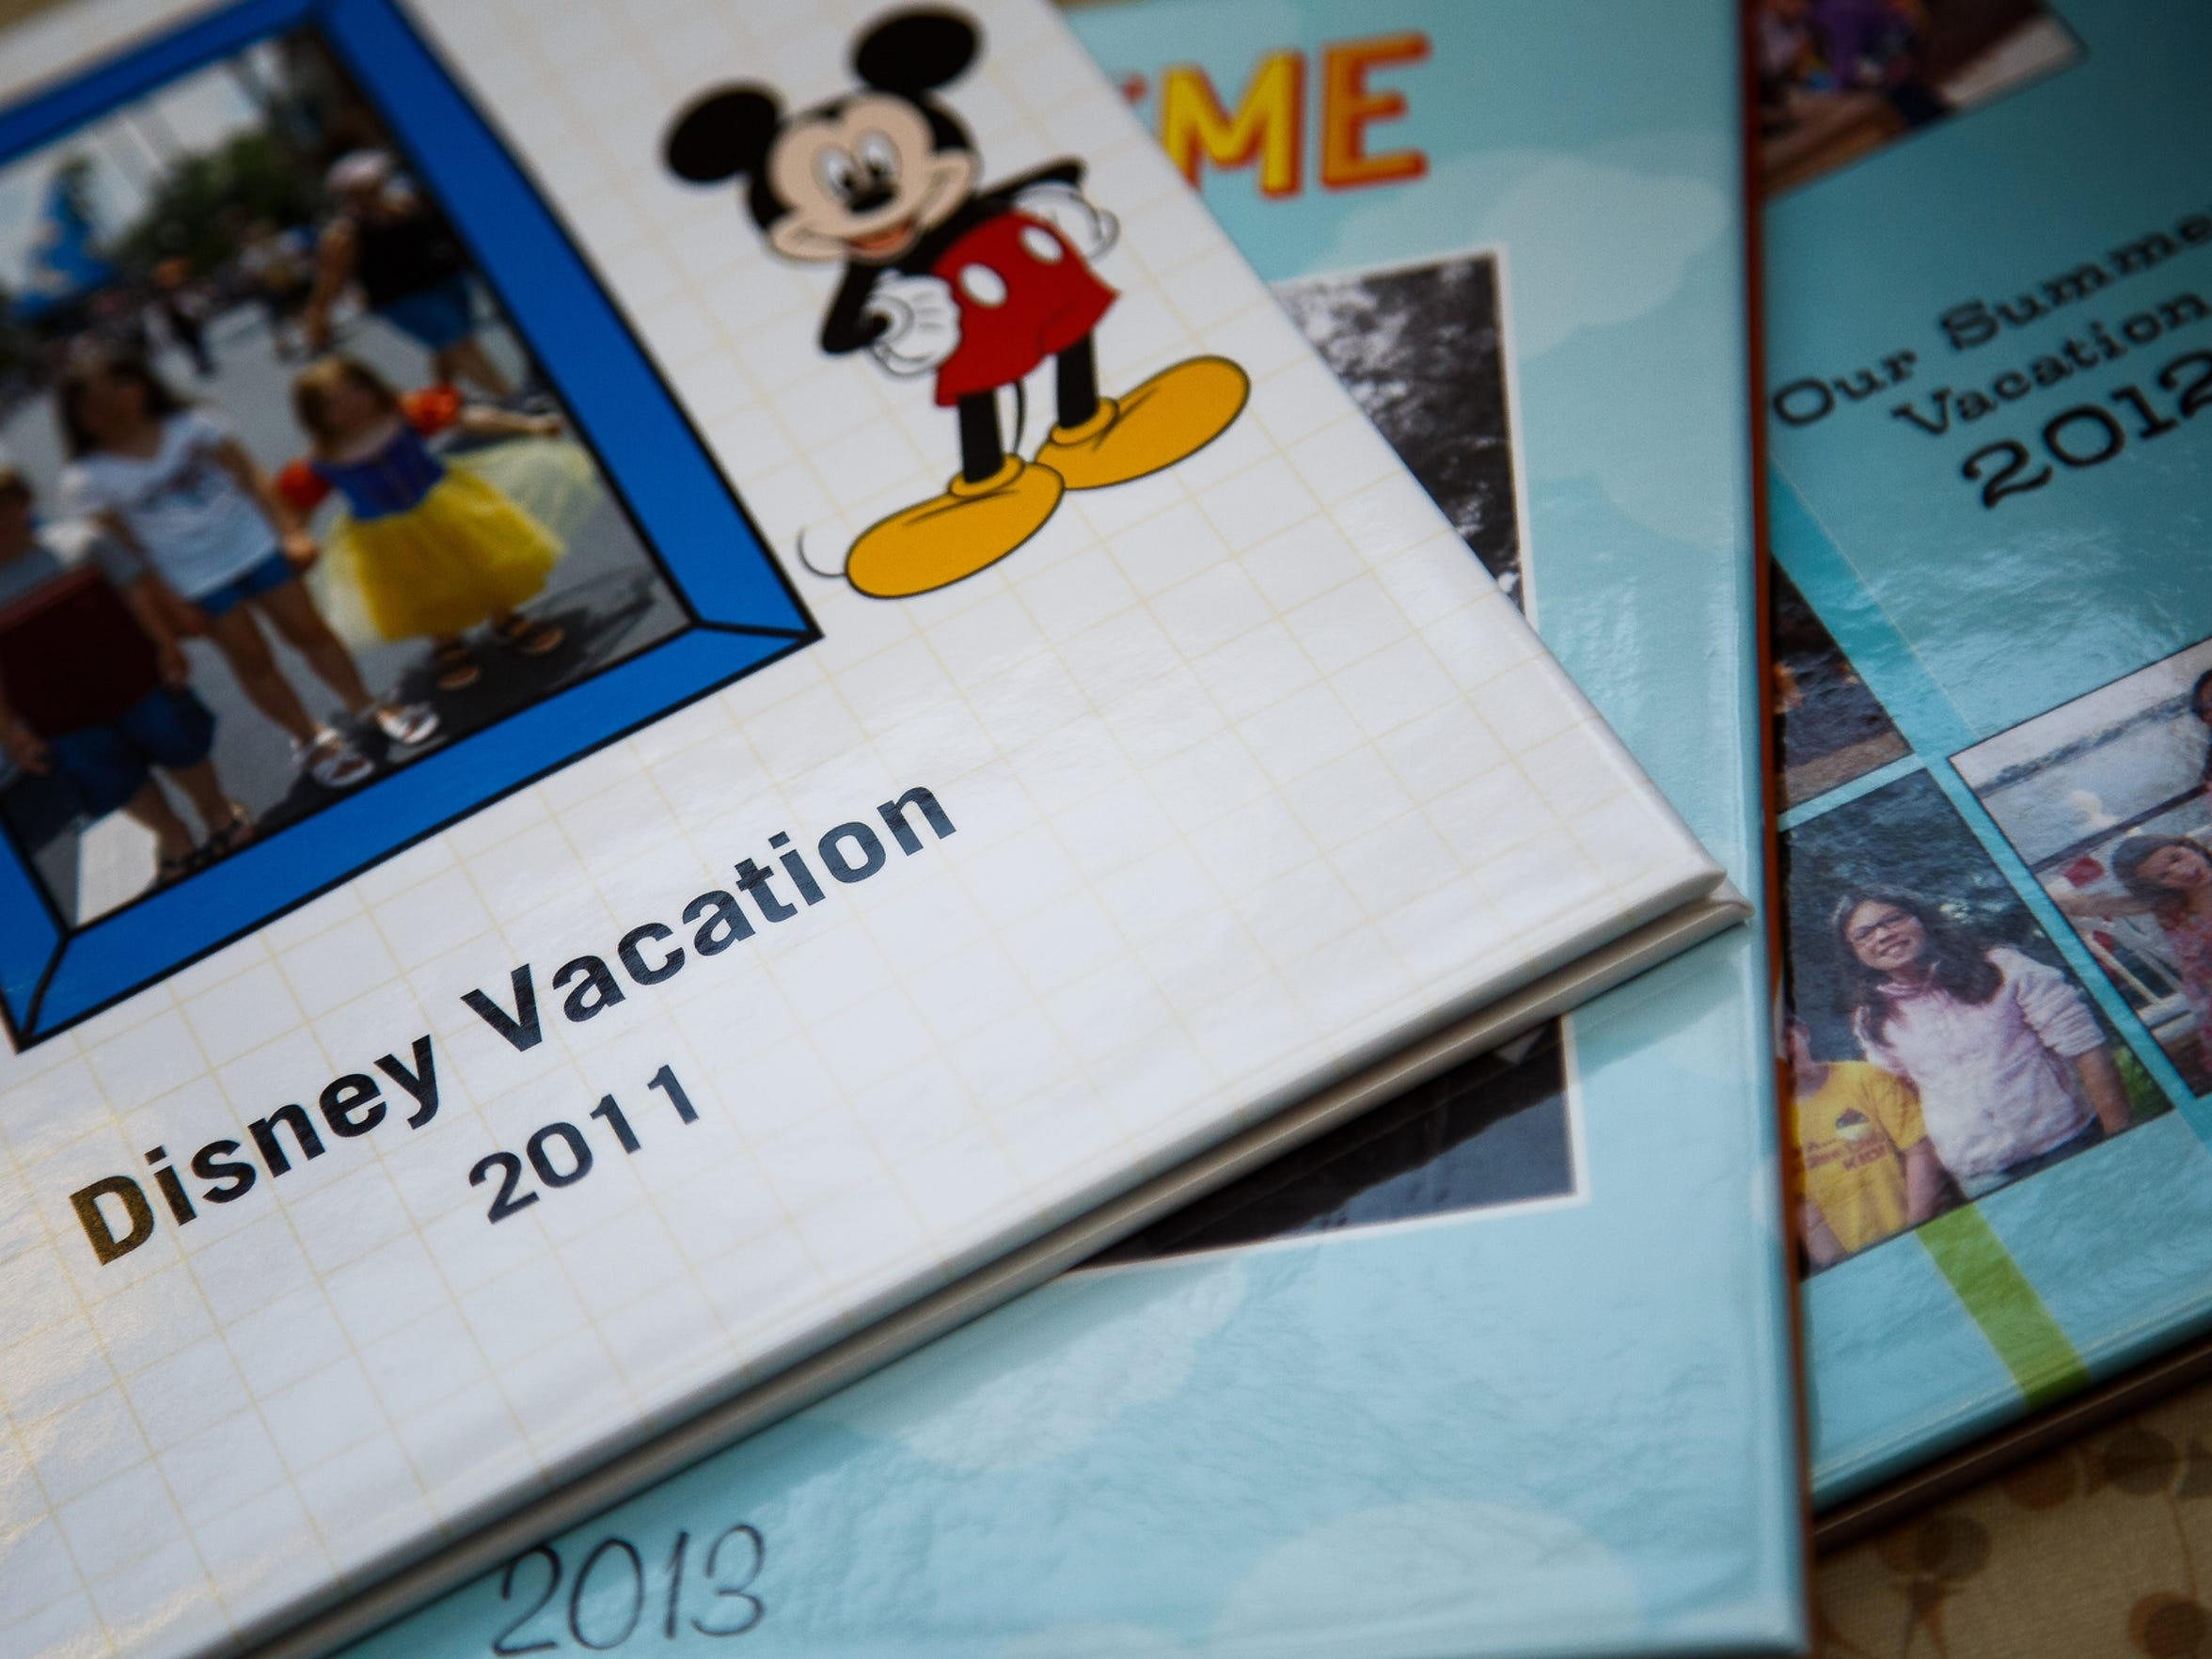 Photo books documenting family vacations are on display